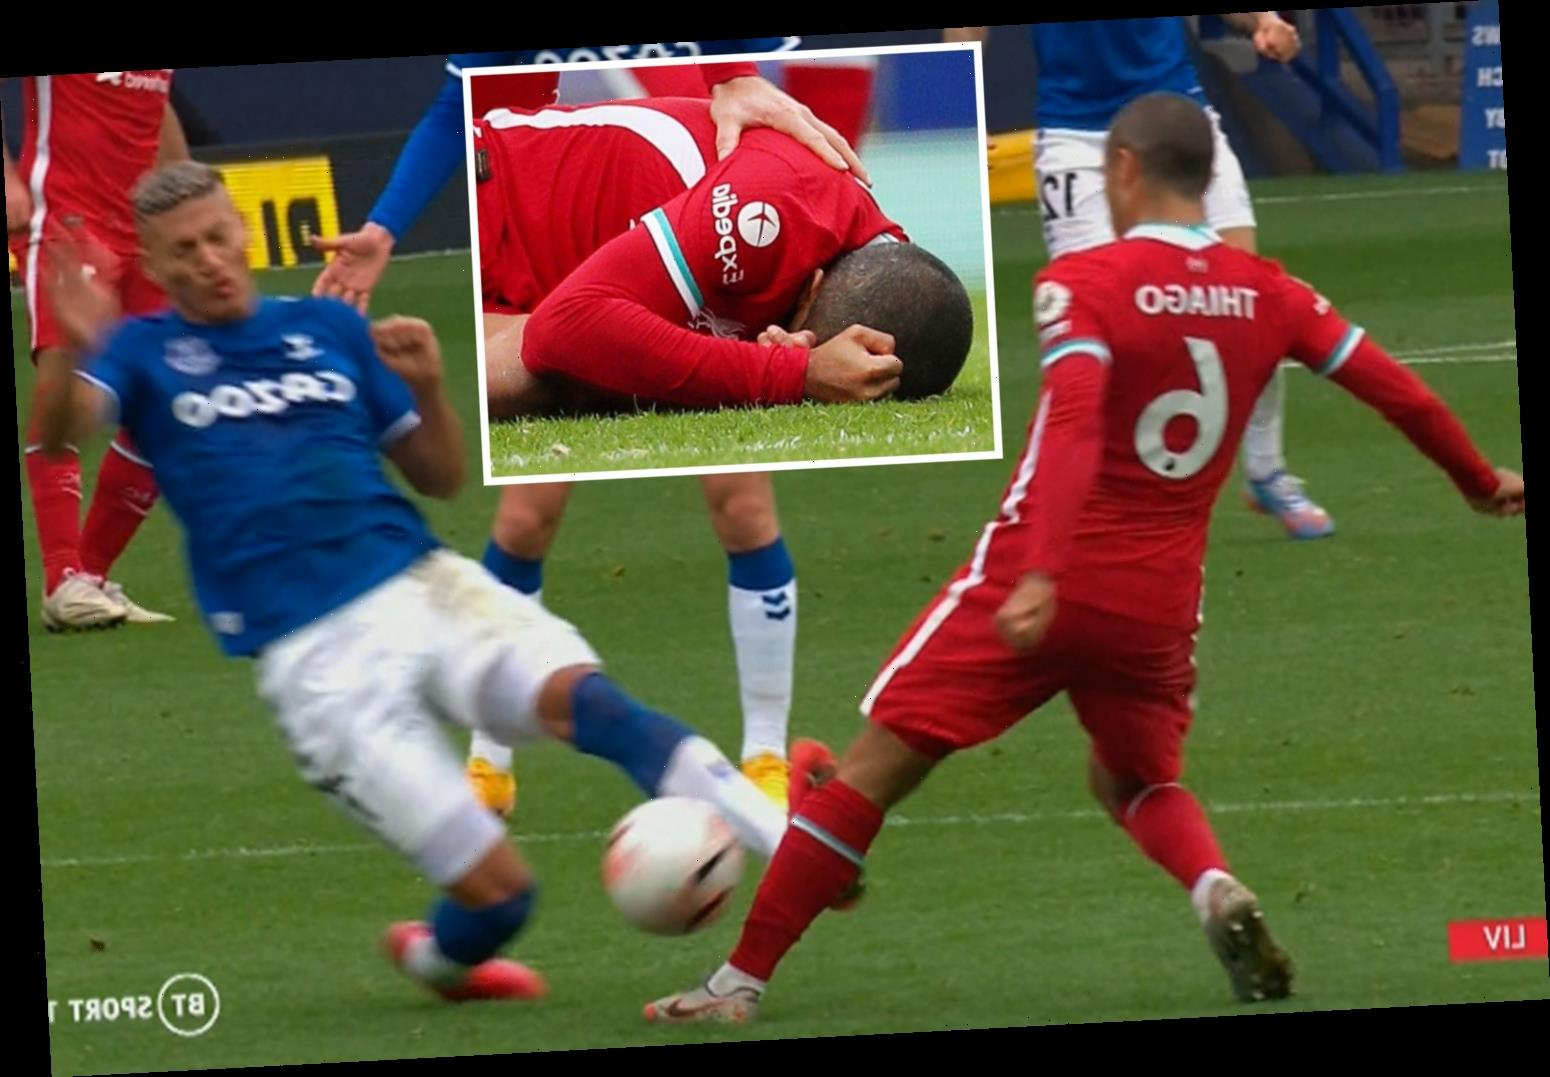 Richarlison writes Thiago an apology letter after seeing red for wild lunge on Liverpool midfielder in Everton draw